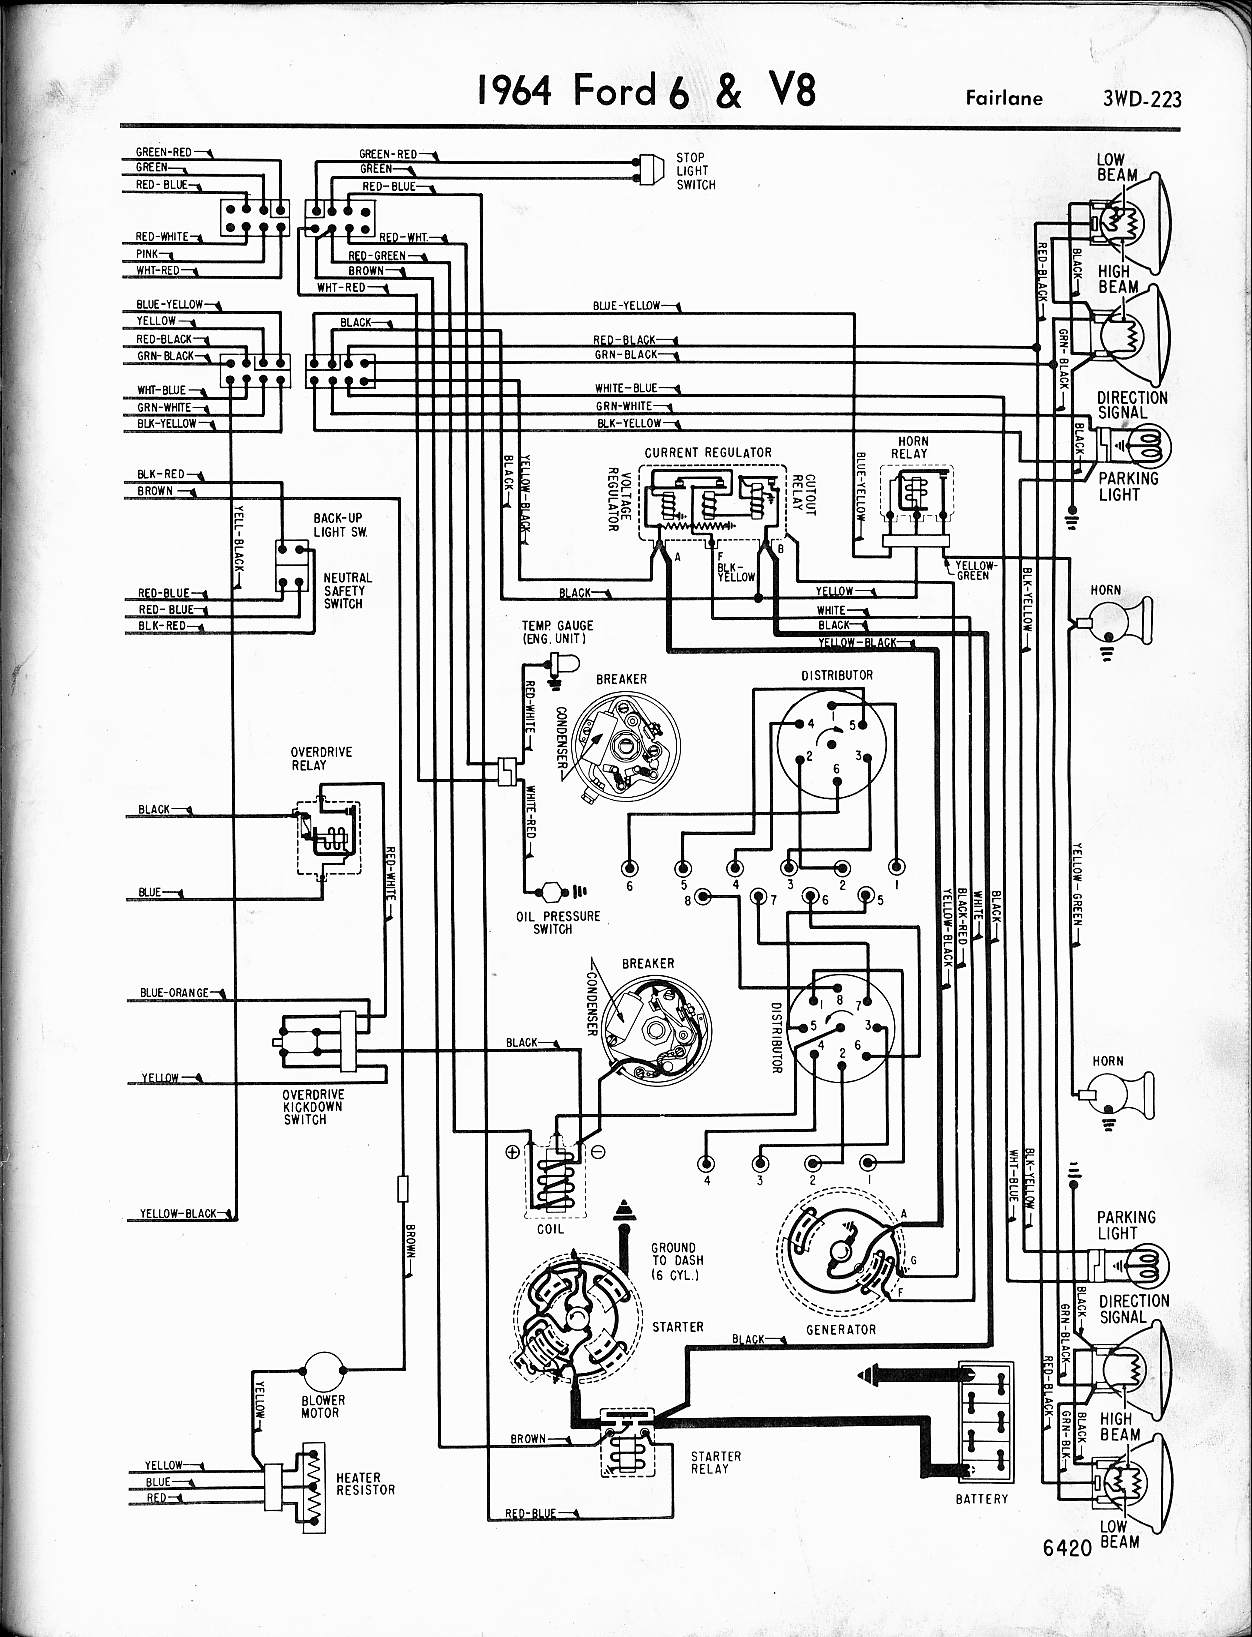 MWire5765 223 57 65 ford wiring diagrams Ford E 350 Wiring Diagrams at edmiracle.co